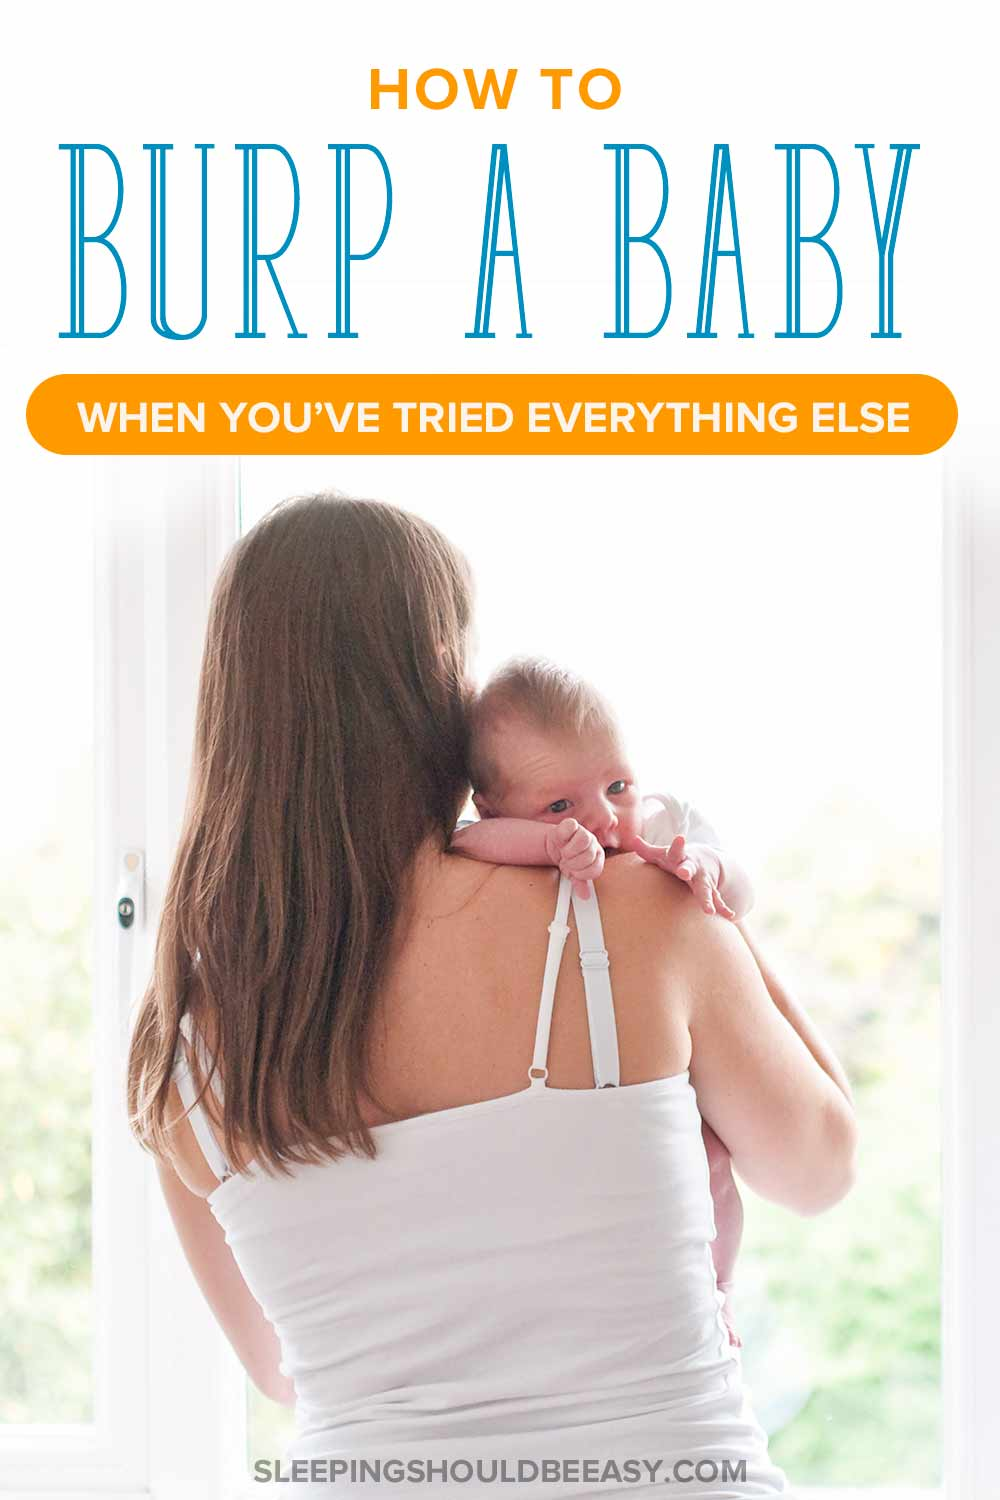 A mom learning how to burp a baby that is hard to burp